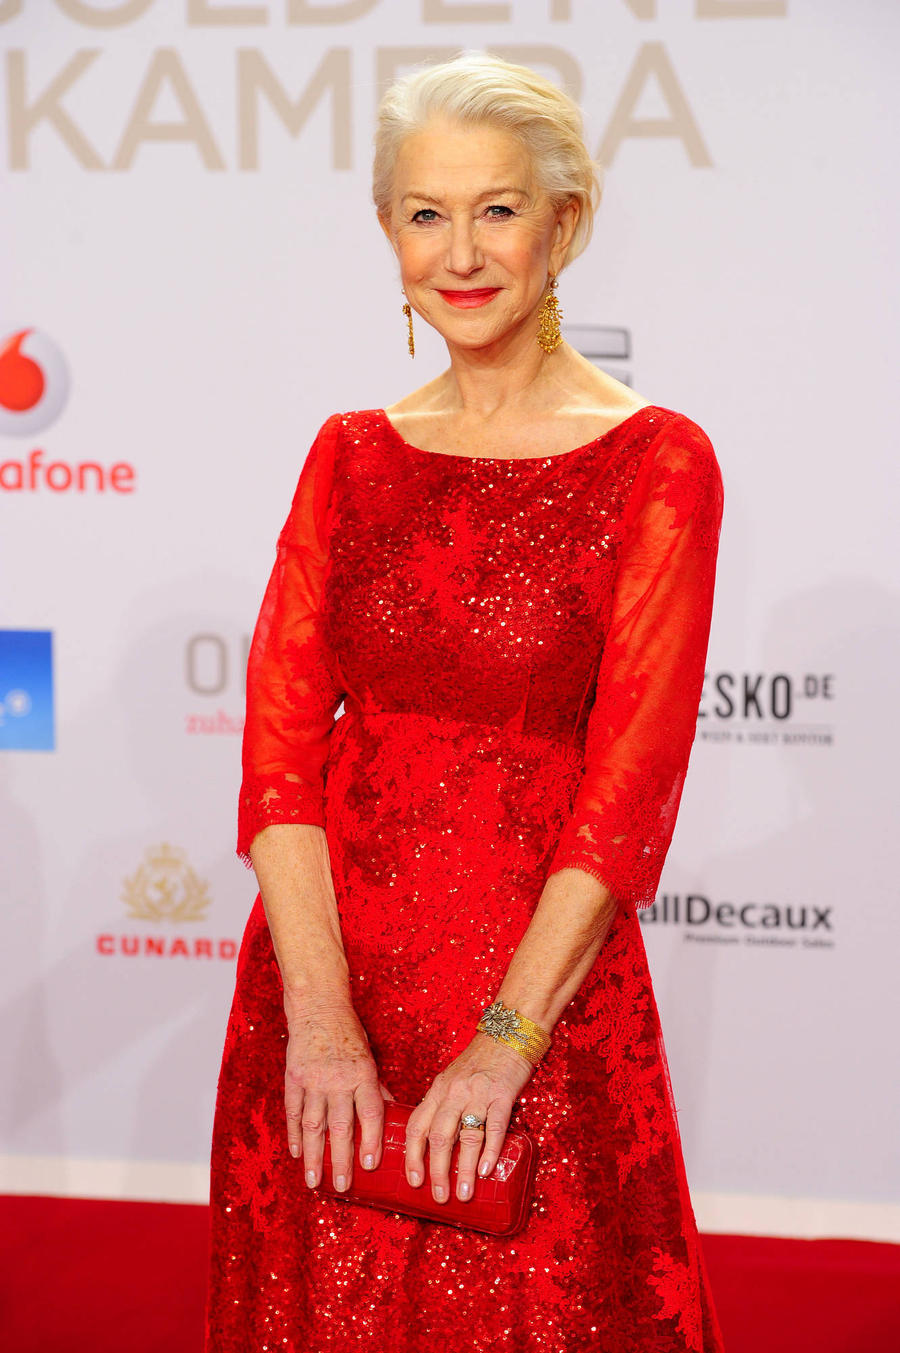 Helen Mirren's Tears Over Not Having Children